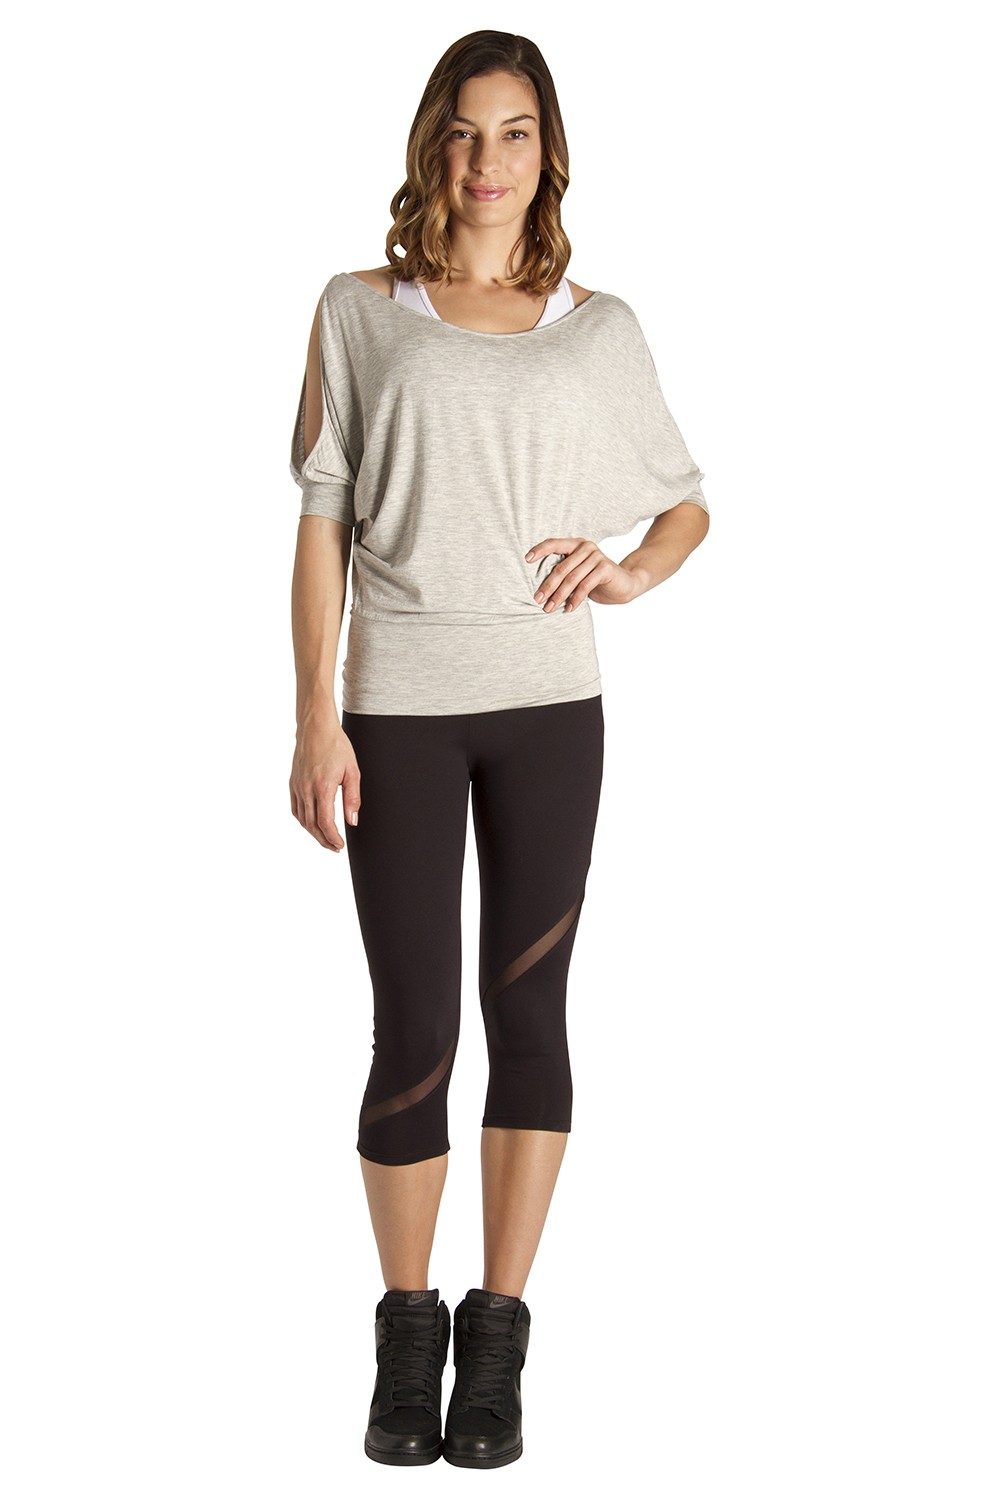 Activewear Top Women's Tops